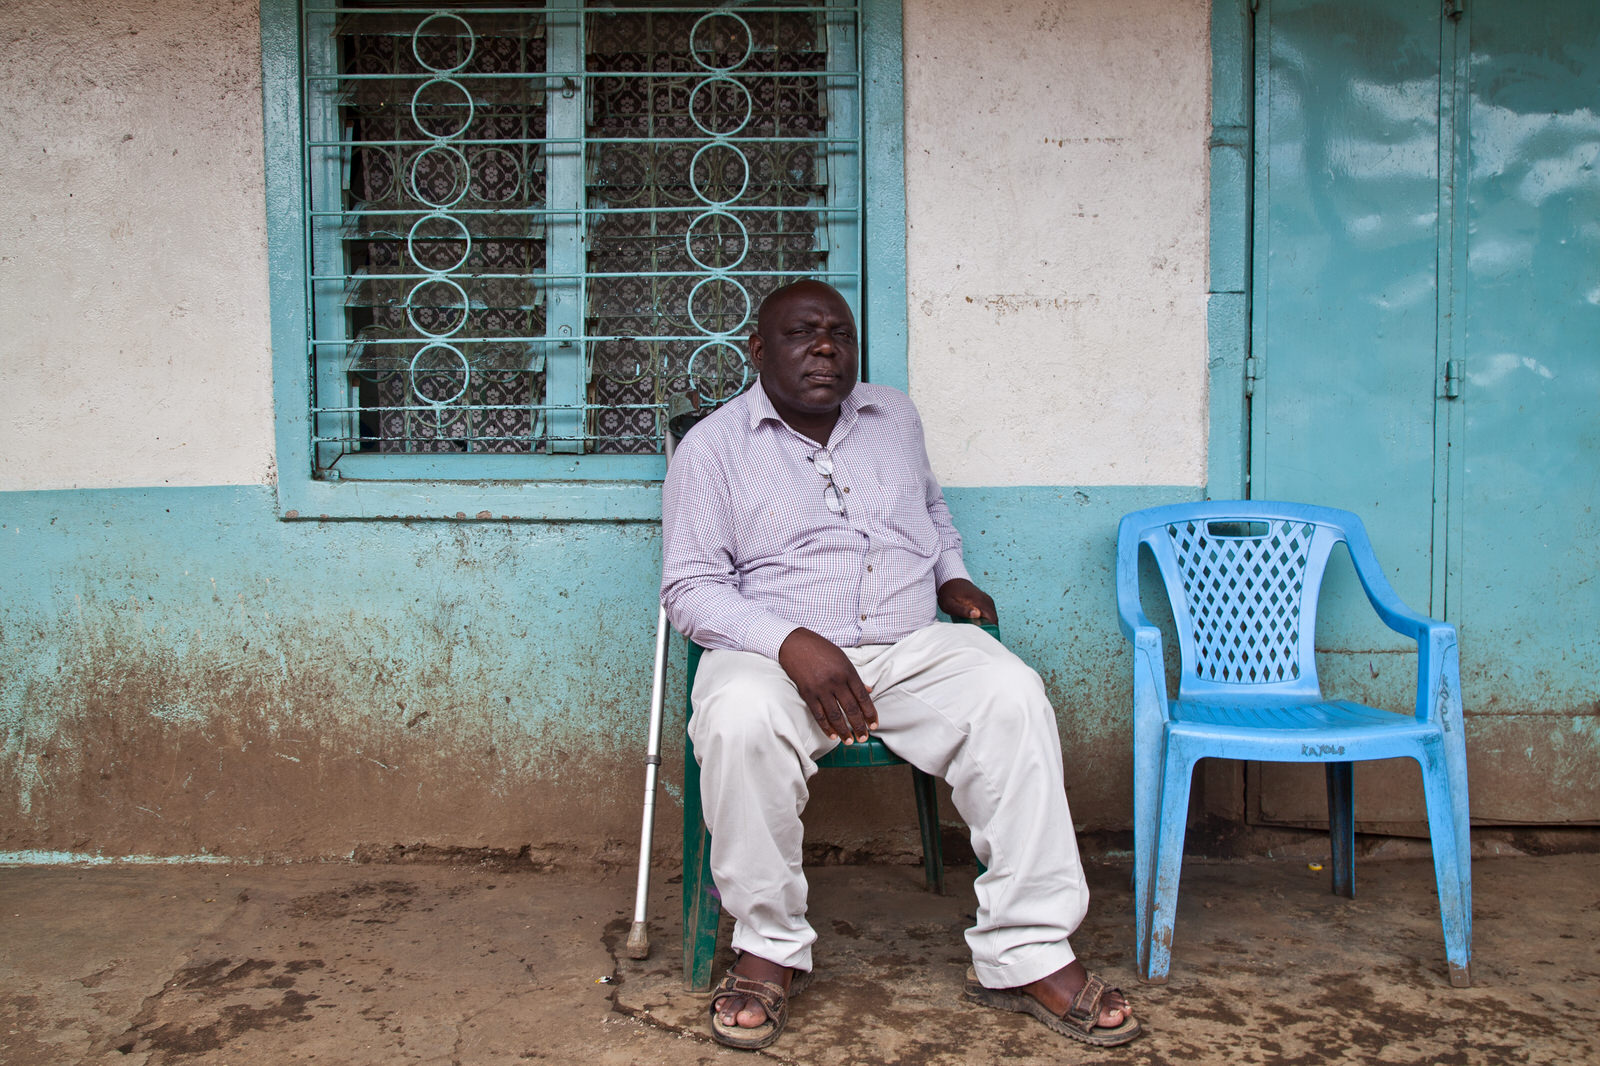 The market master of Kondele is responsible for managing the market, allocationg spaces and collecting revenue.